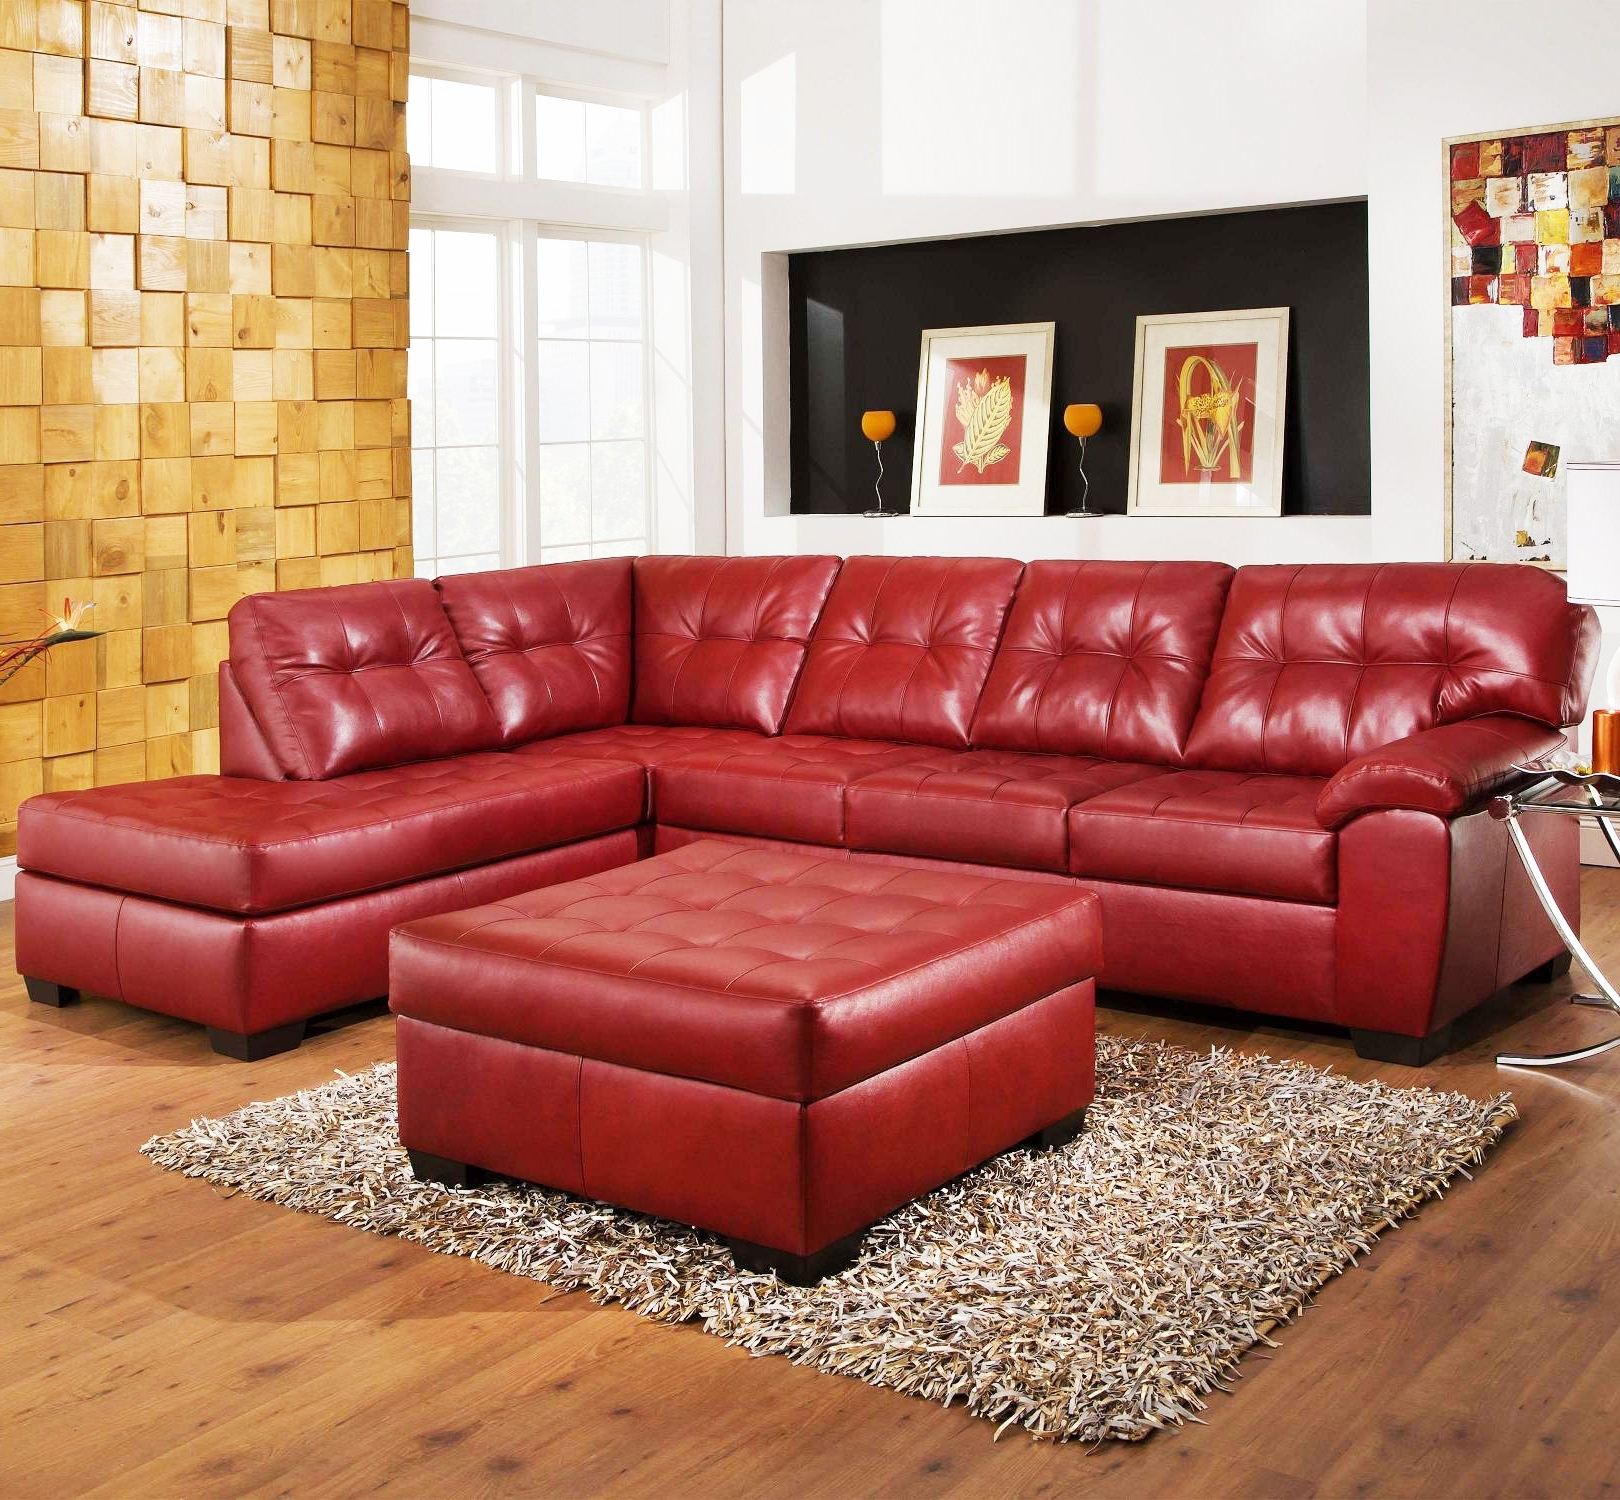 Living Room: Astonishing Rooms To Go Sectional Leather Havertys Regarding Latest Sectional Sofas At Rooms To Go (View 5 of 20)